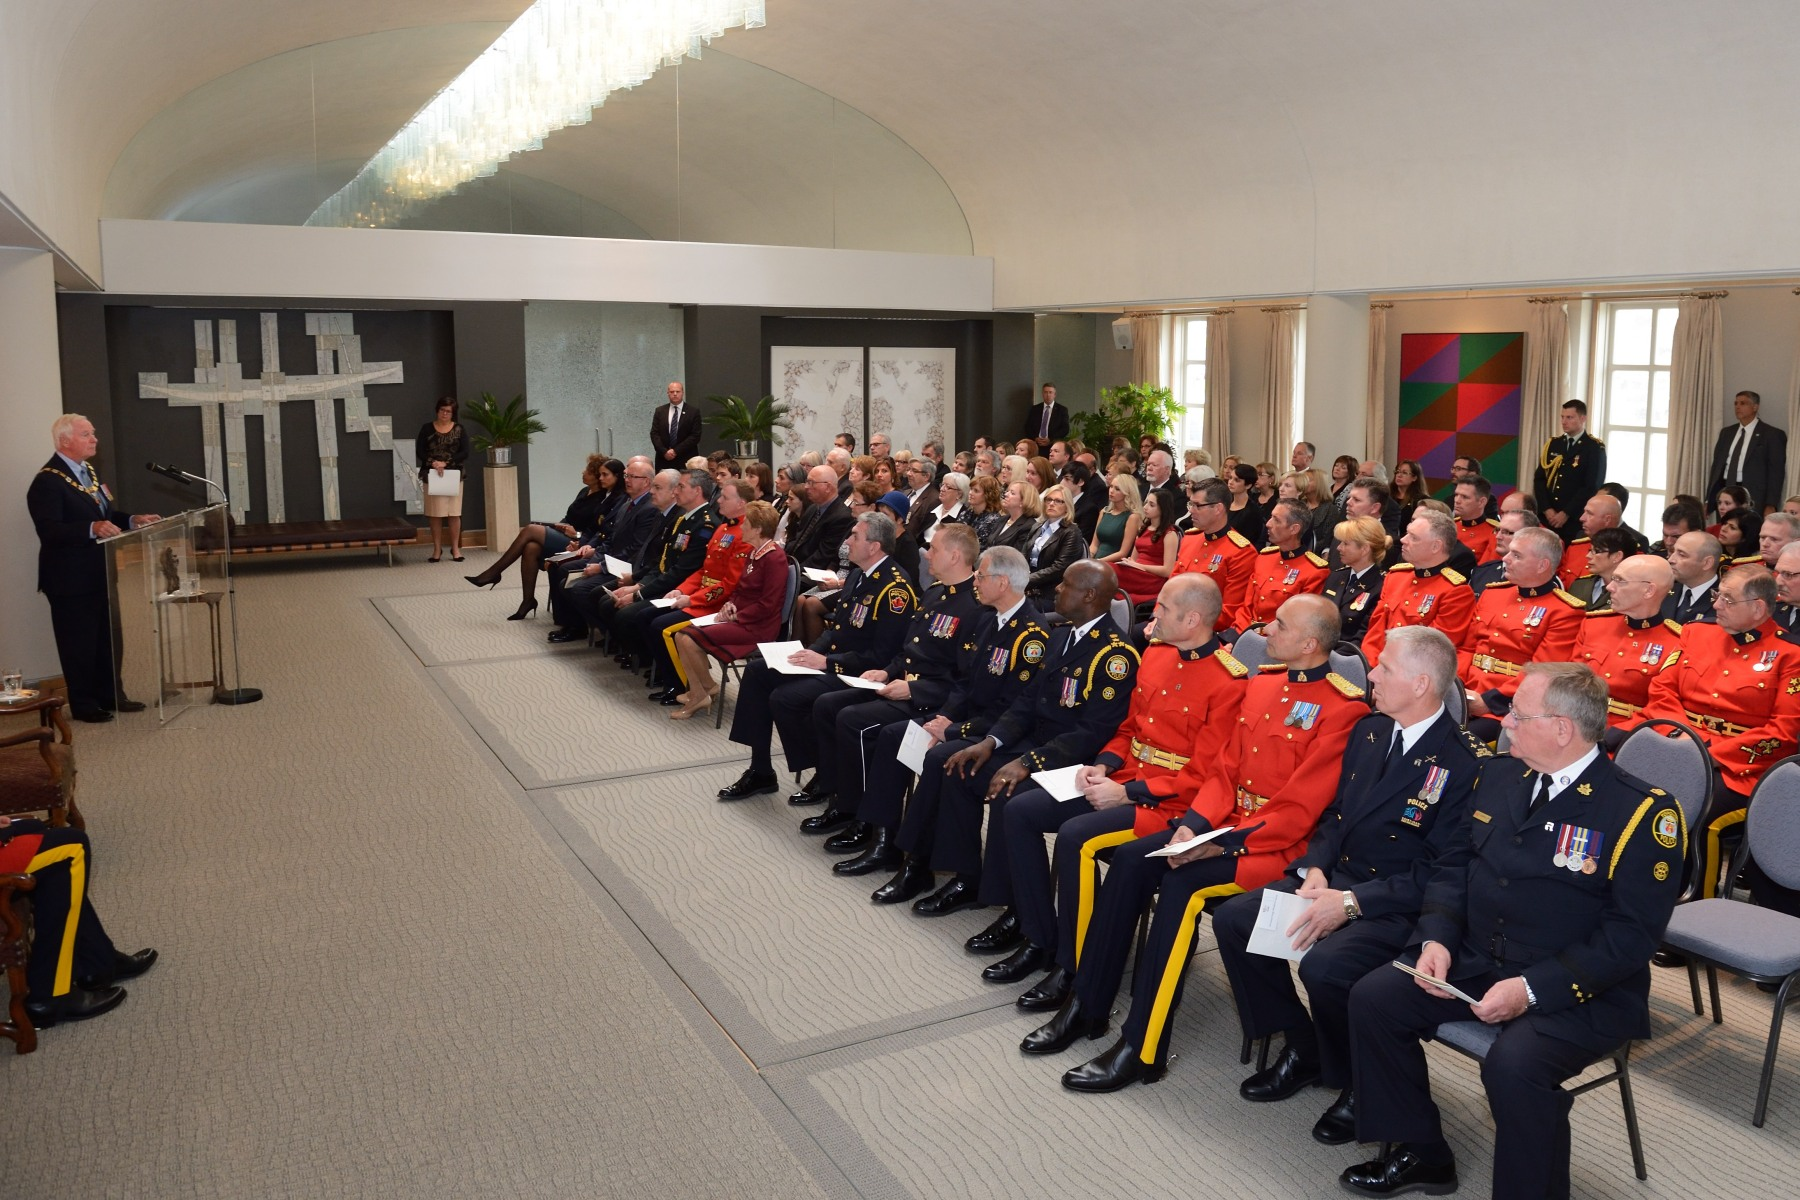 An Order of Merit of the Police Forces investiture ceremony was held in the afternoon. The Order was created in 2000, to recognize conspicuous merit and exceptional service by members and employees of Canadian police forces whose contributions extend beyond protection of the community.